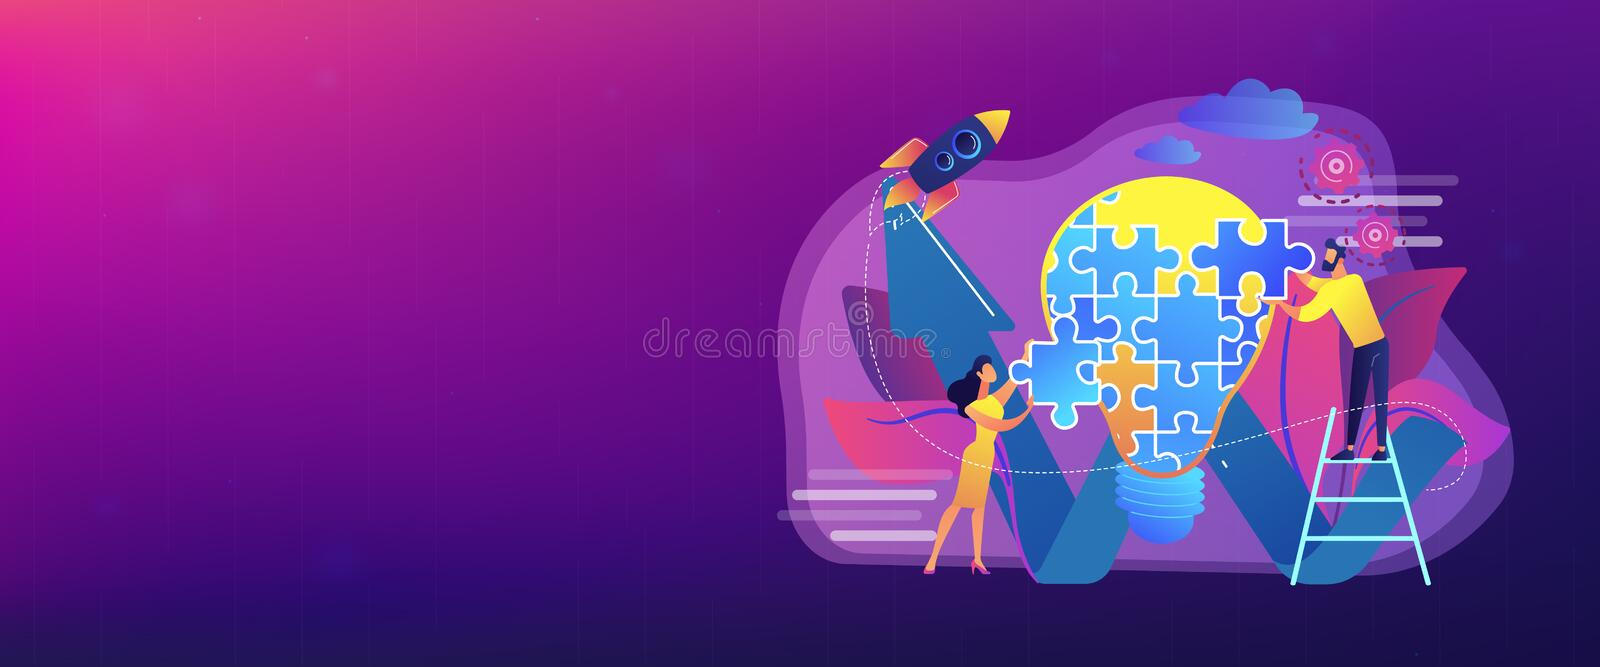 Creative idea concept banner header. Business team doing lightbulb from jigsaw puzzle and rising arrow. Creative idea and insight, notion, invention concept on royalty free illustration